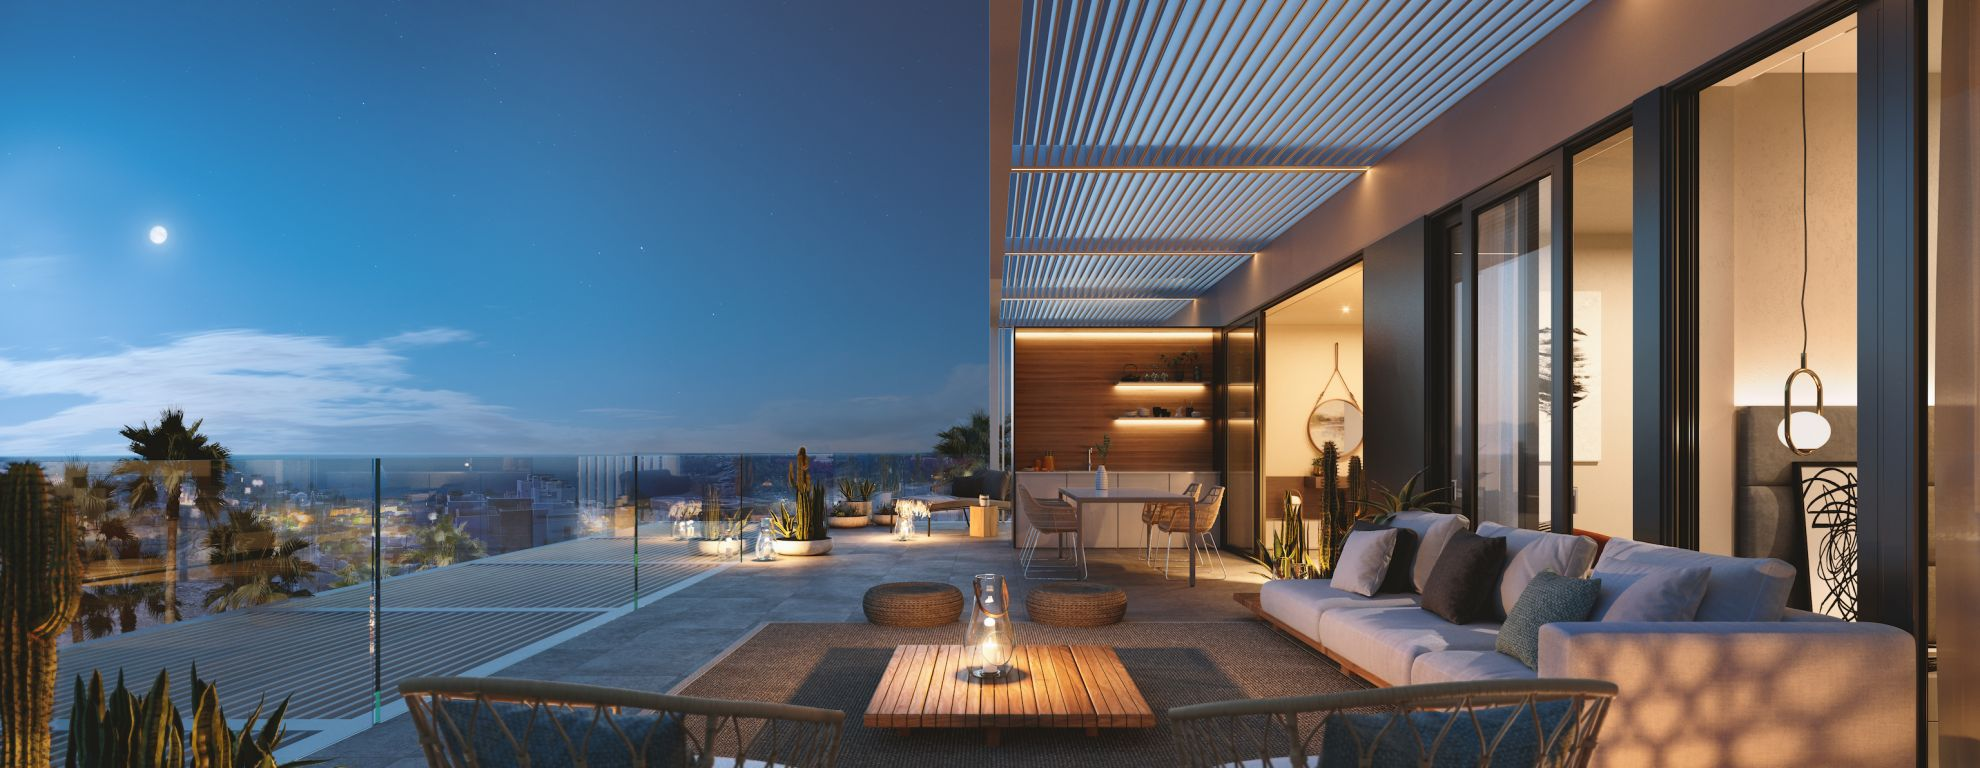 2 and 3 bedroom penthouse-style apartments with big terraces overlookg the sea. House 11 12